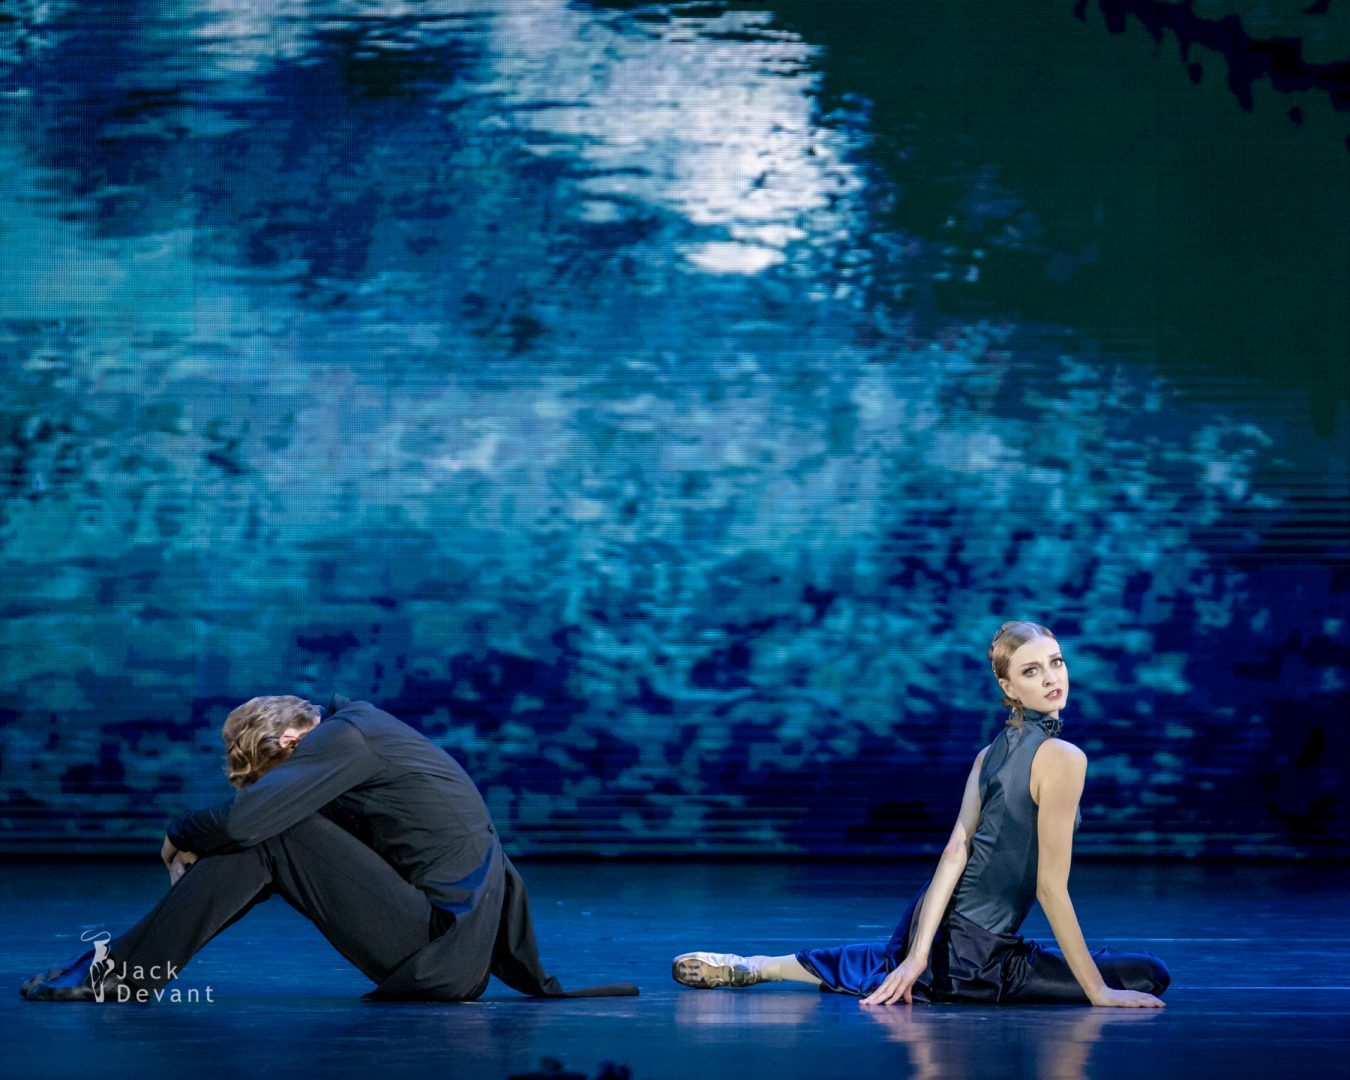 Daria Reznik and Igor Subbotin in Adagio from Anna Karenina